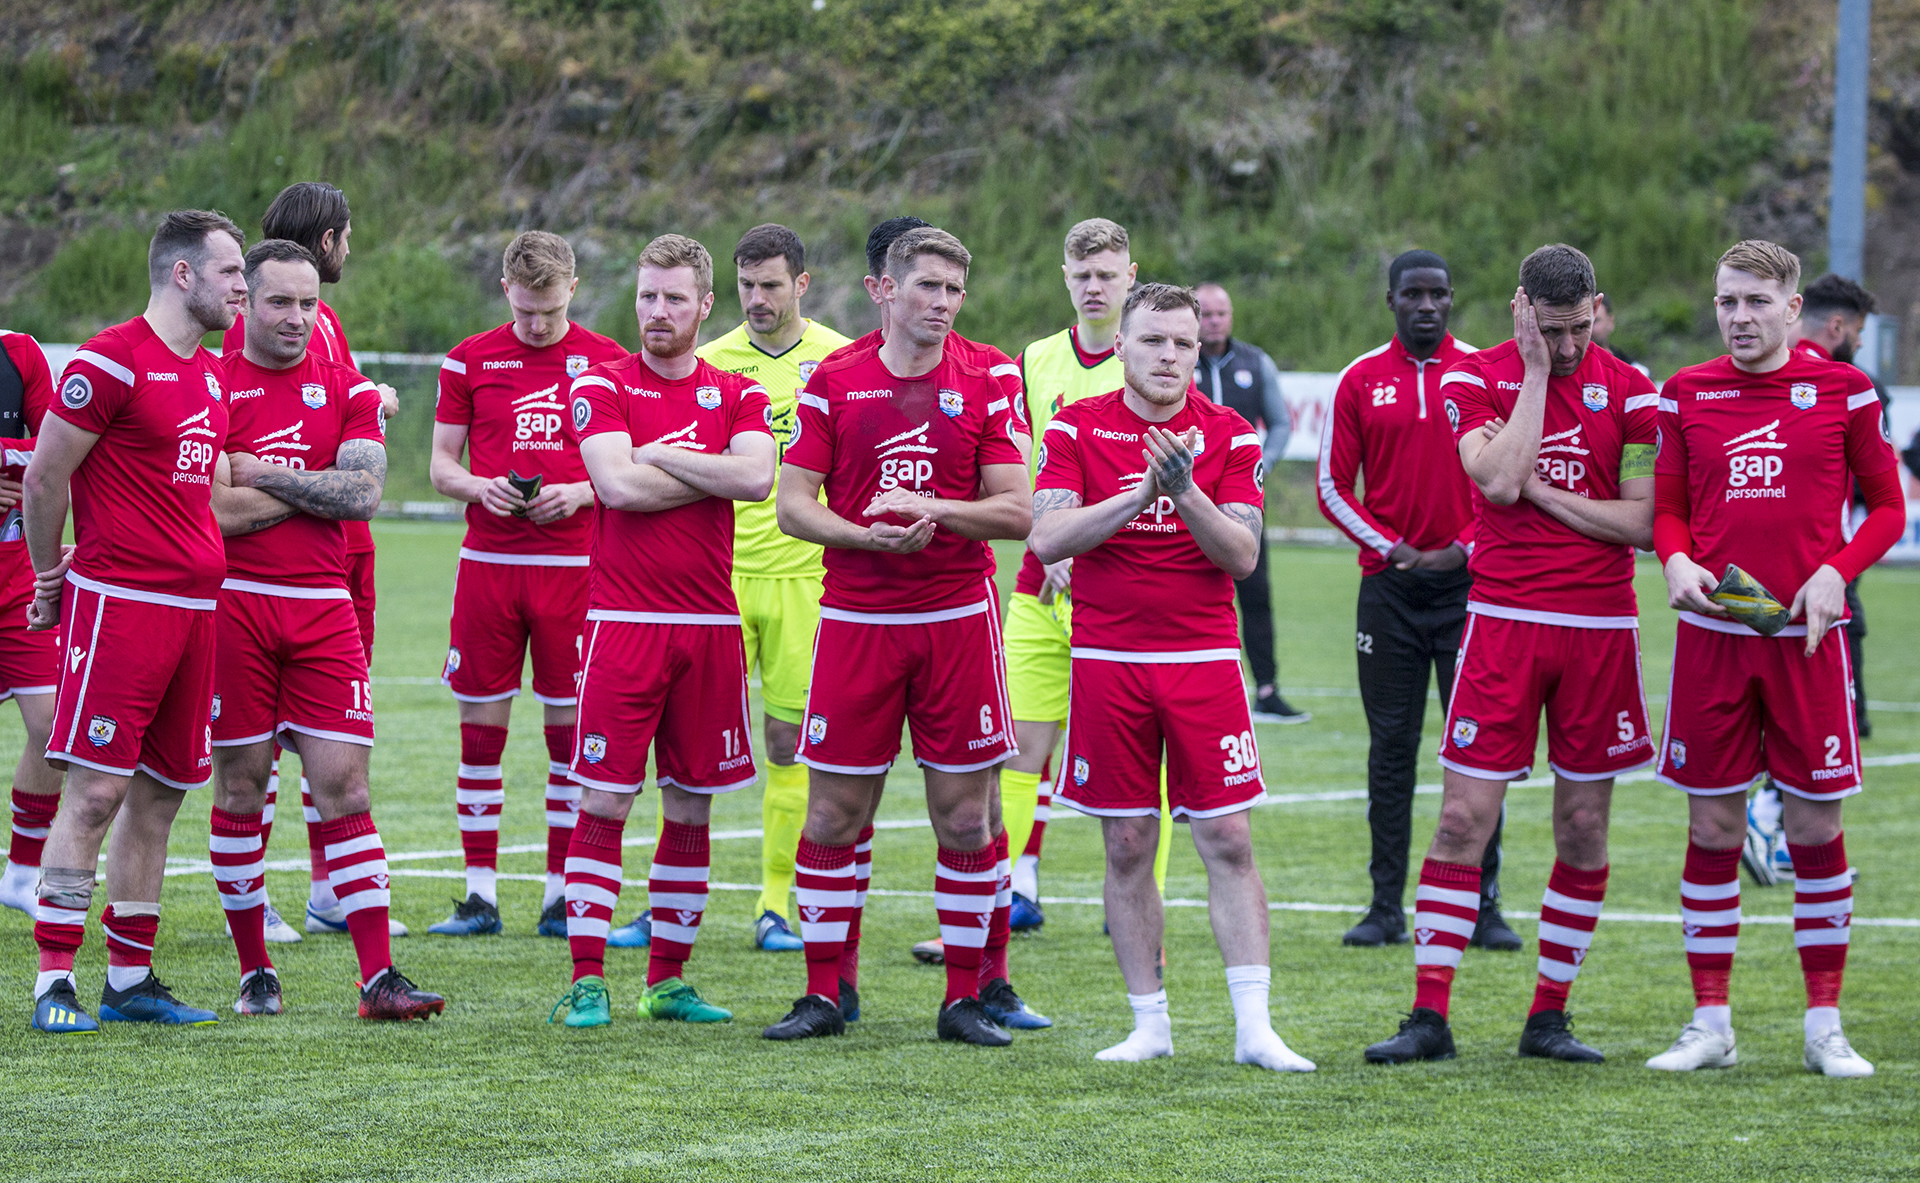 Nomads lose out in JD Welsh Cup final